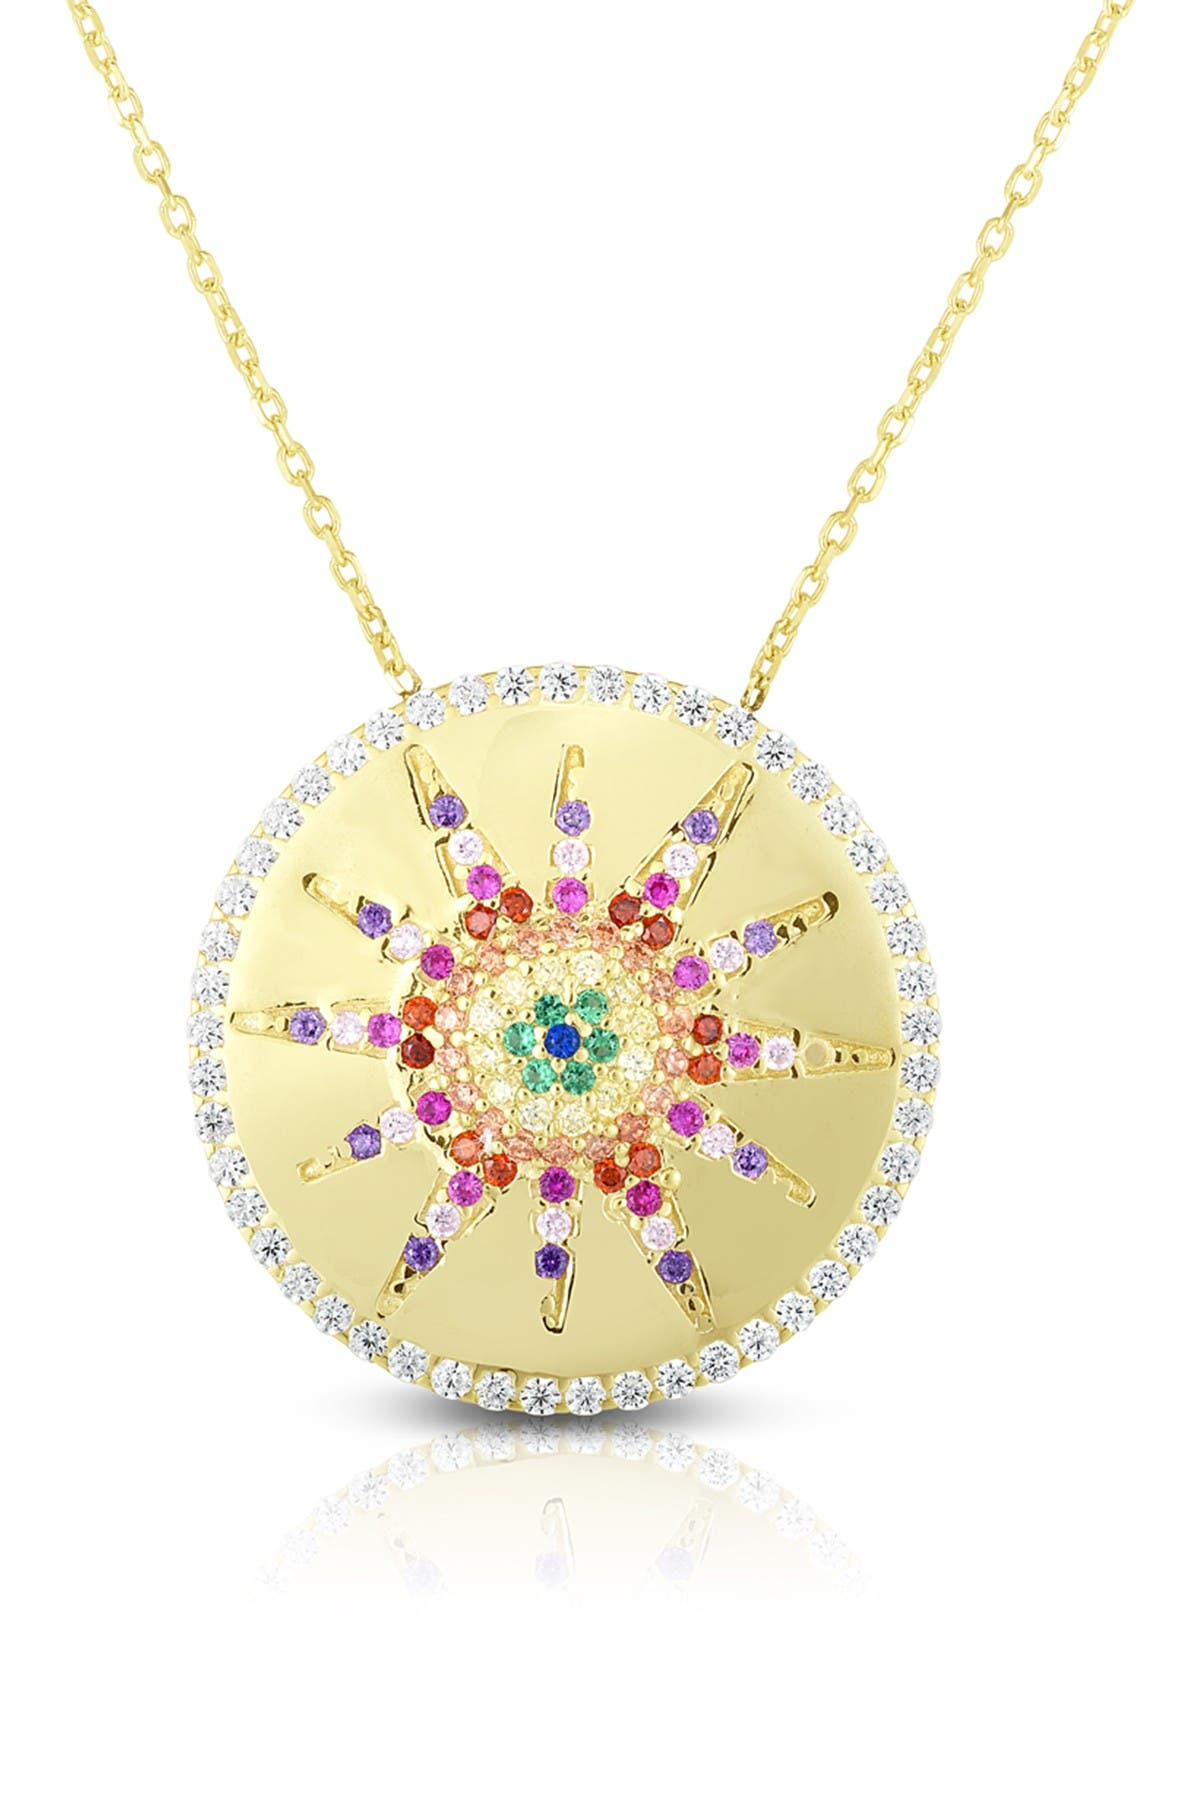 Sphera Milano 14K Yellow Gold Plated Sterling Silver Pave Rainbow CZ Medallion Pendant Necklace at Nordstrom Rack